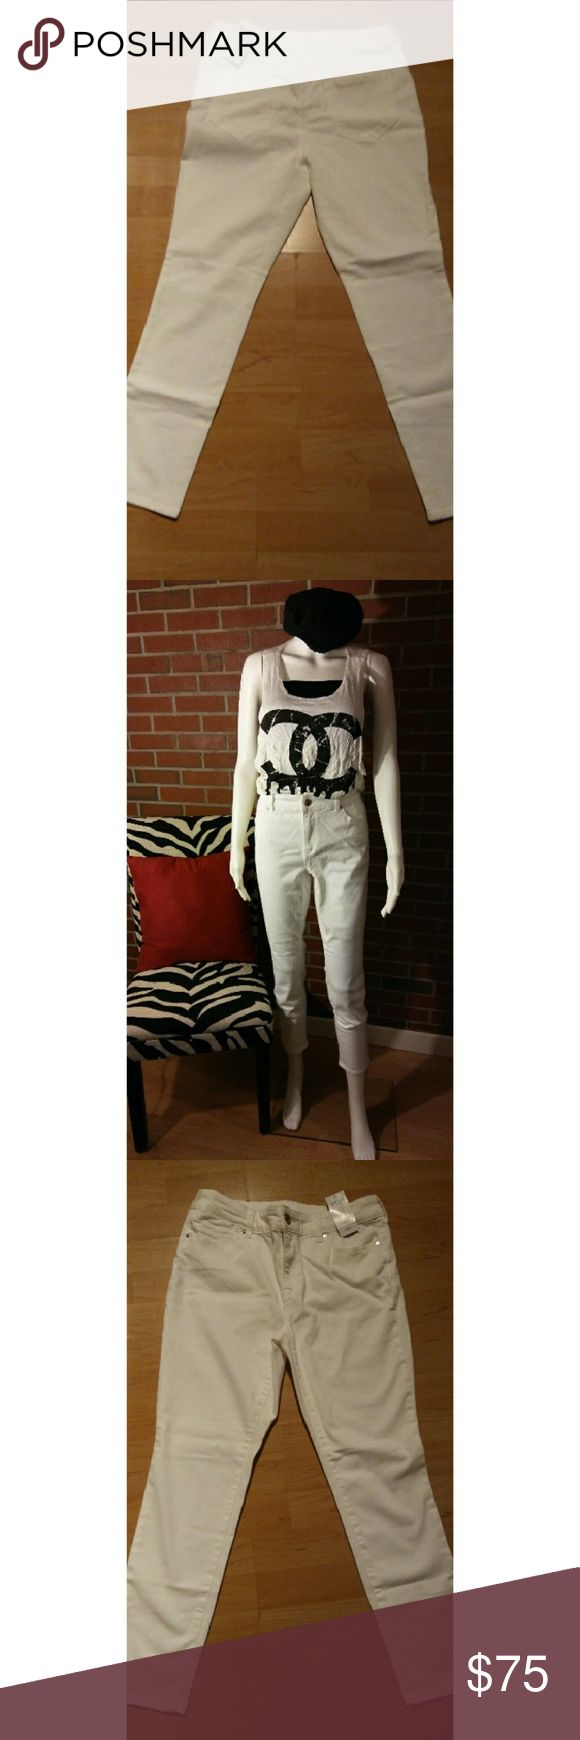 🆕Jeggings Pants💎 New Price💎 Chico's White Platinum Jeggings DETAILS: NWT SIZE: 0.5 Which is 6P- See Chart FABRIC: 61% Cotton 29% Rayon 8% Polyester 2% Spandex Chico's Pants